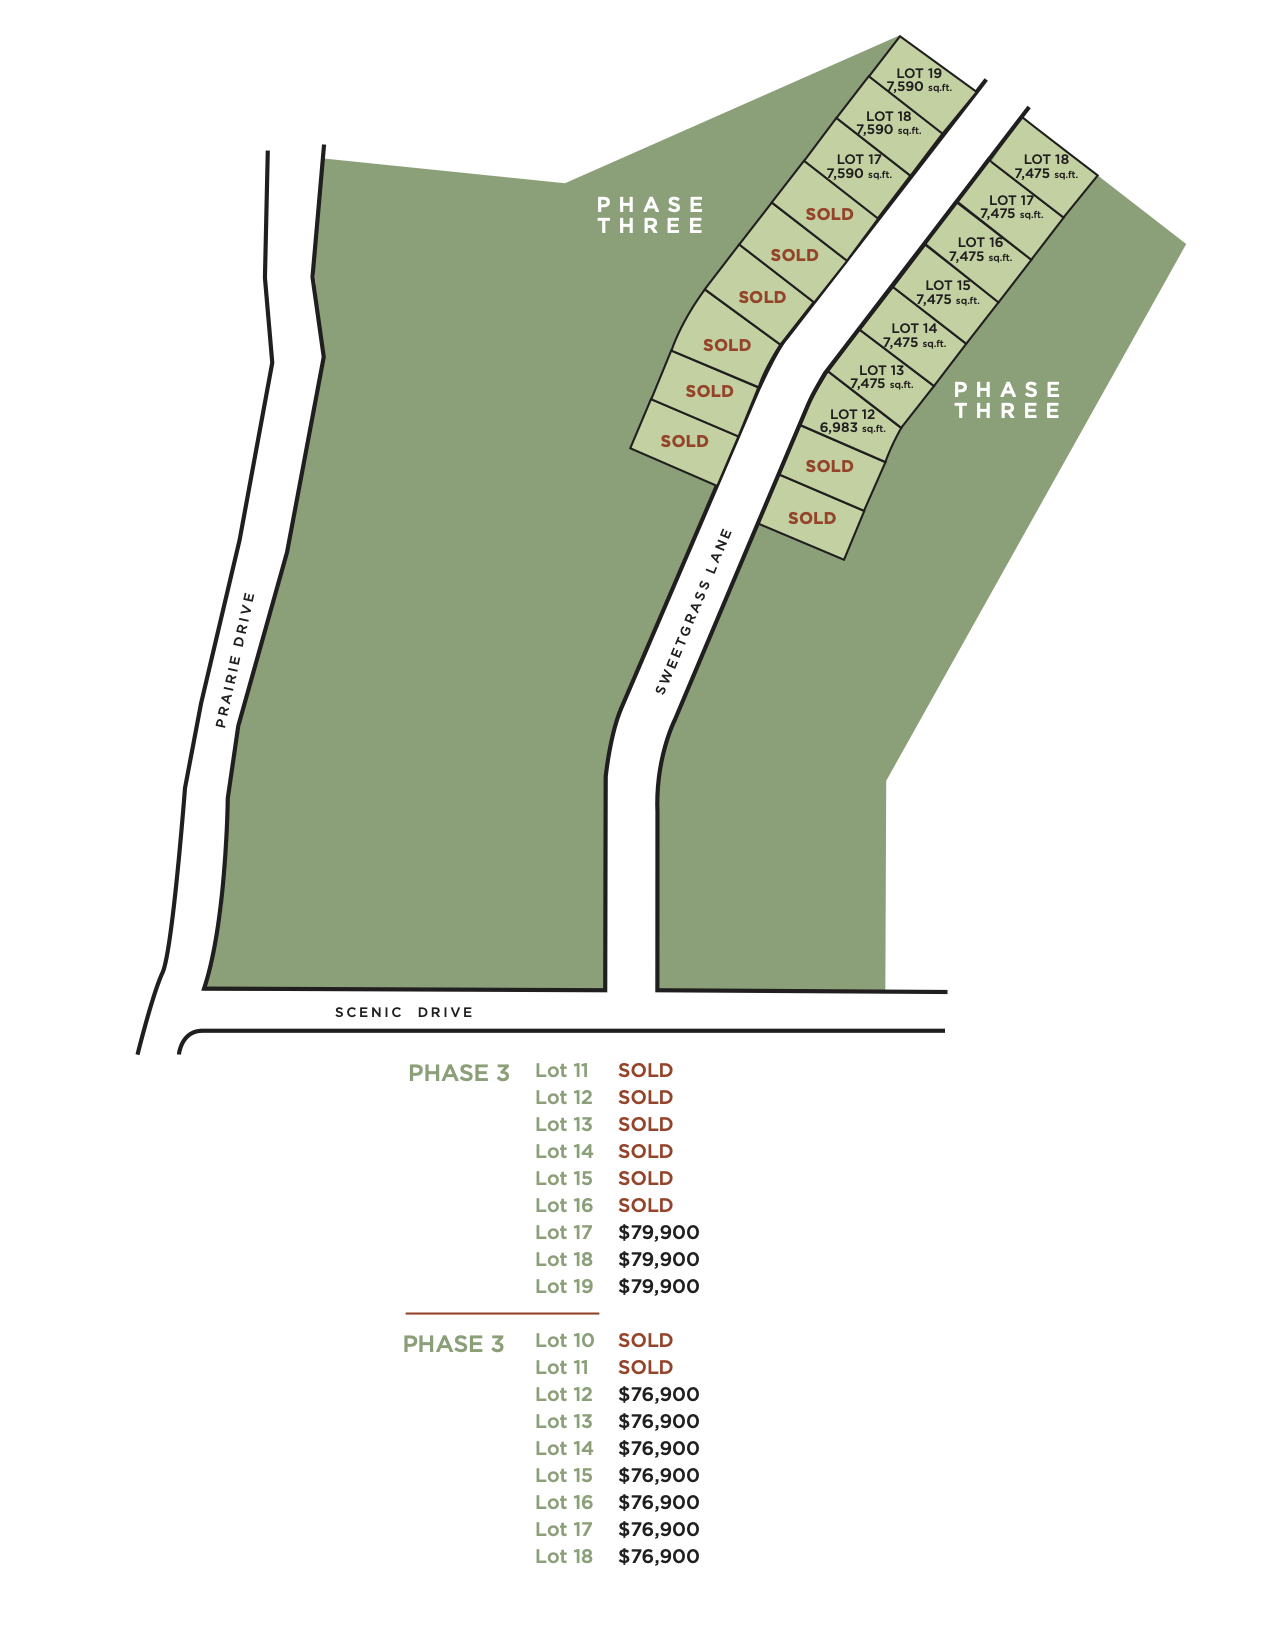 NorthTown Phase map 102